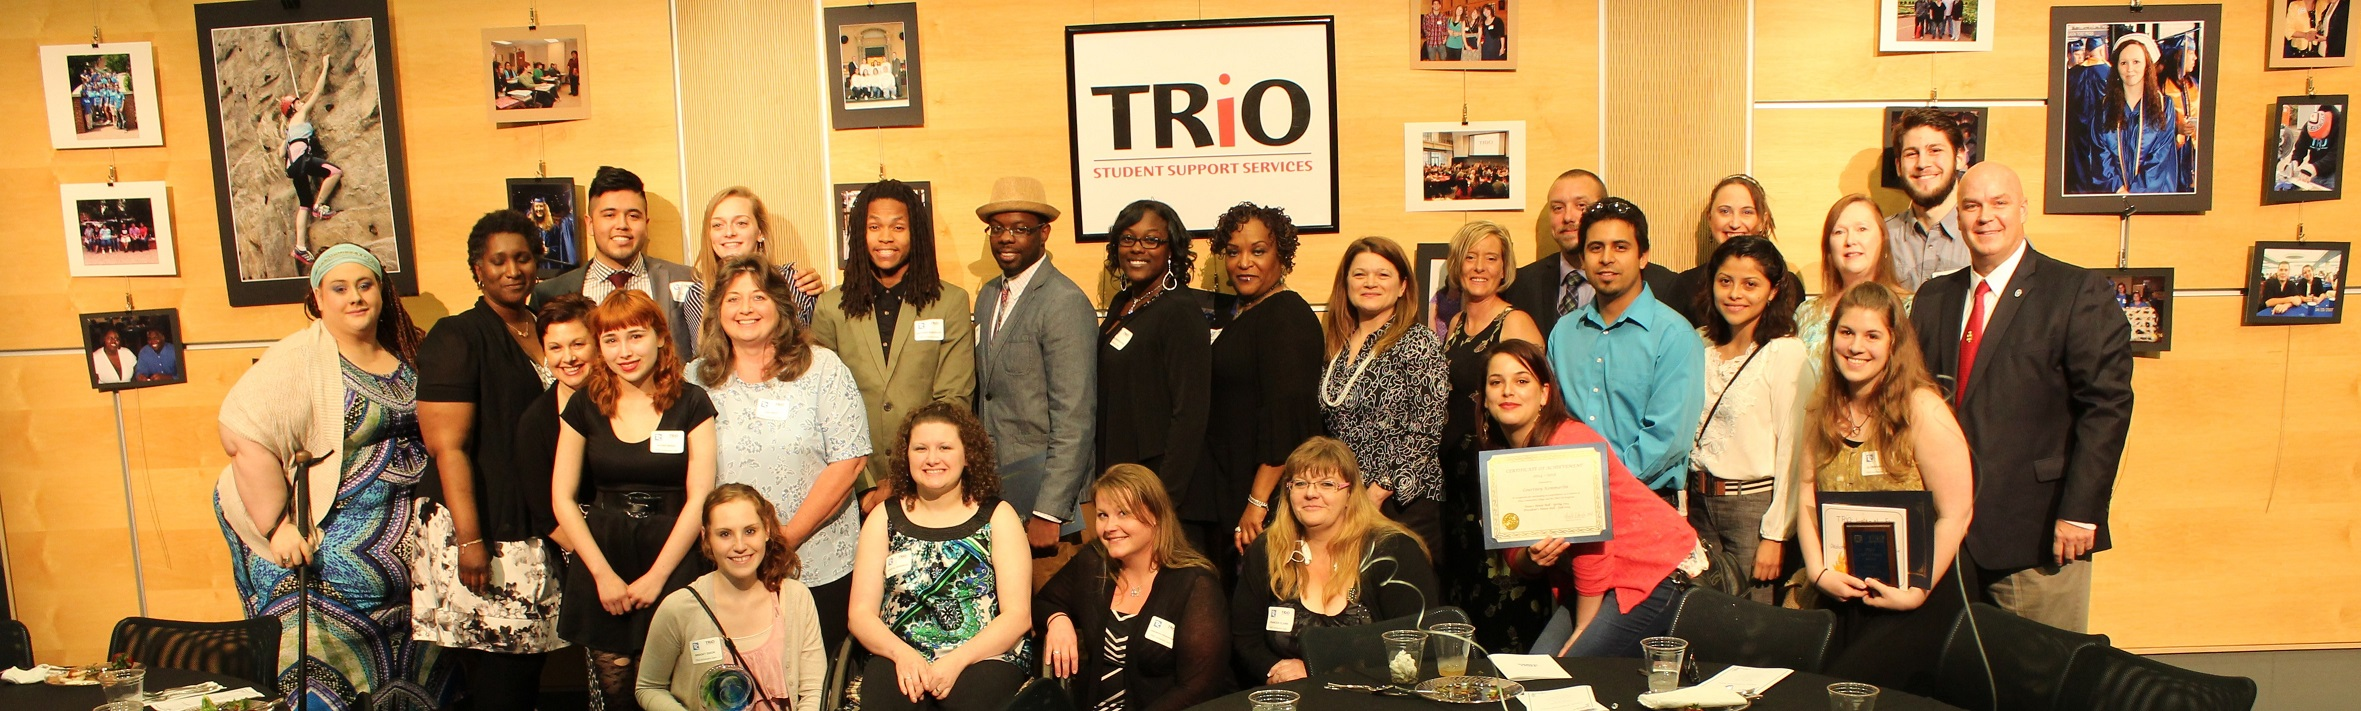 TRiO Student Group Picture from 2015 Gala